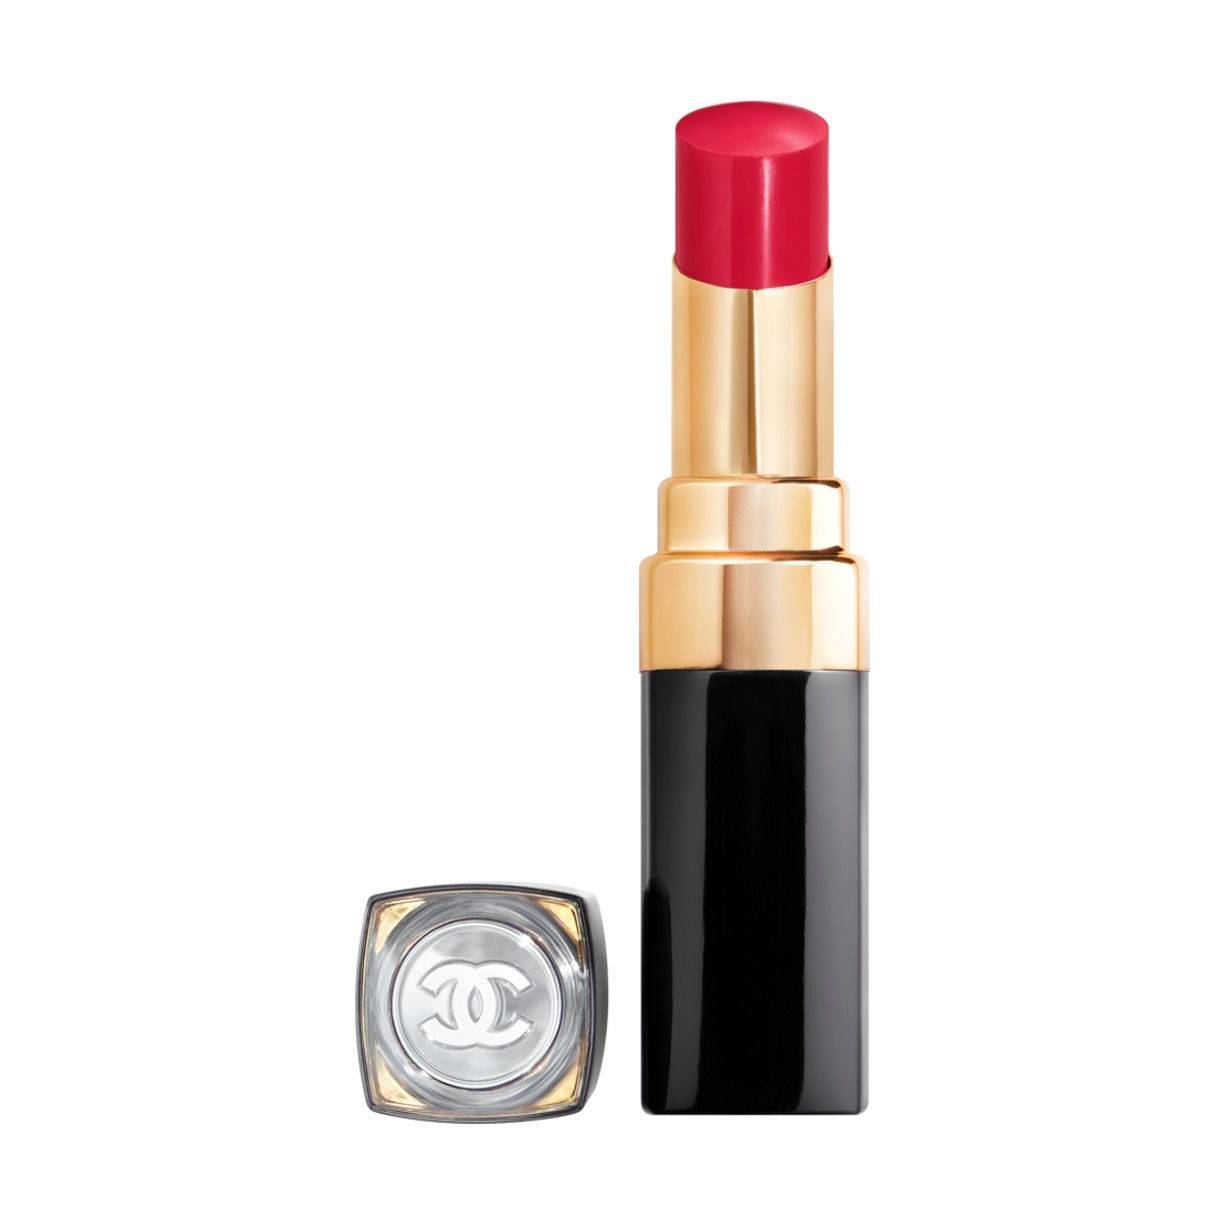 ROUGE COCO FLASH COLOUR, SHINE, INTENSITY IN A FLASH 91 - BOHÈME